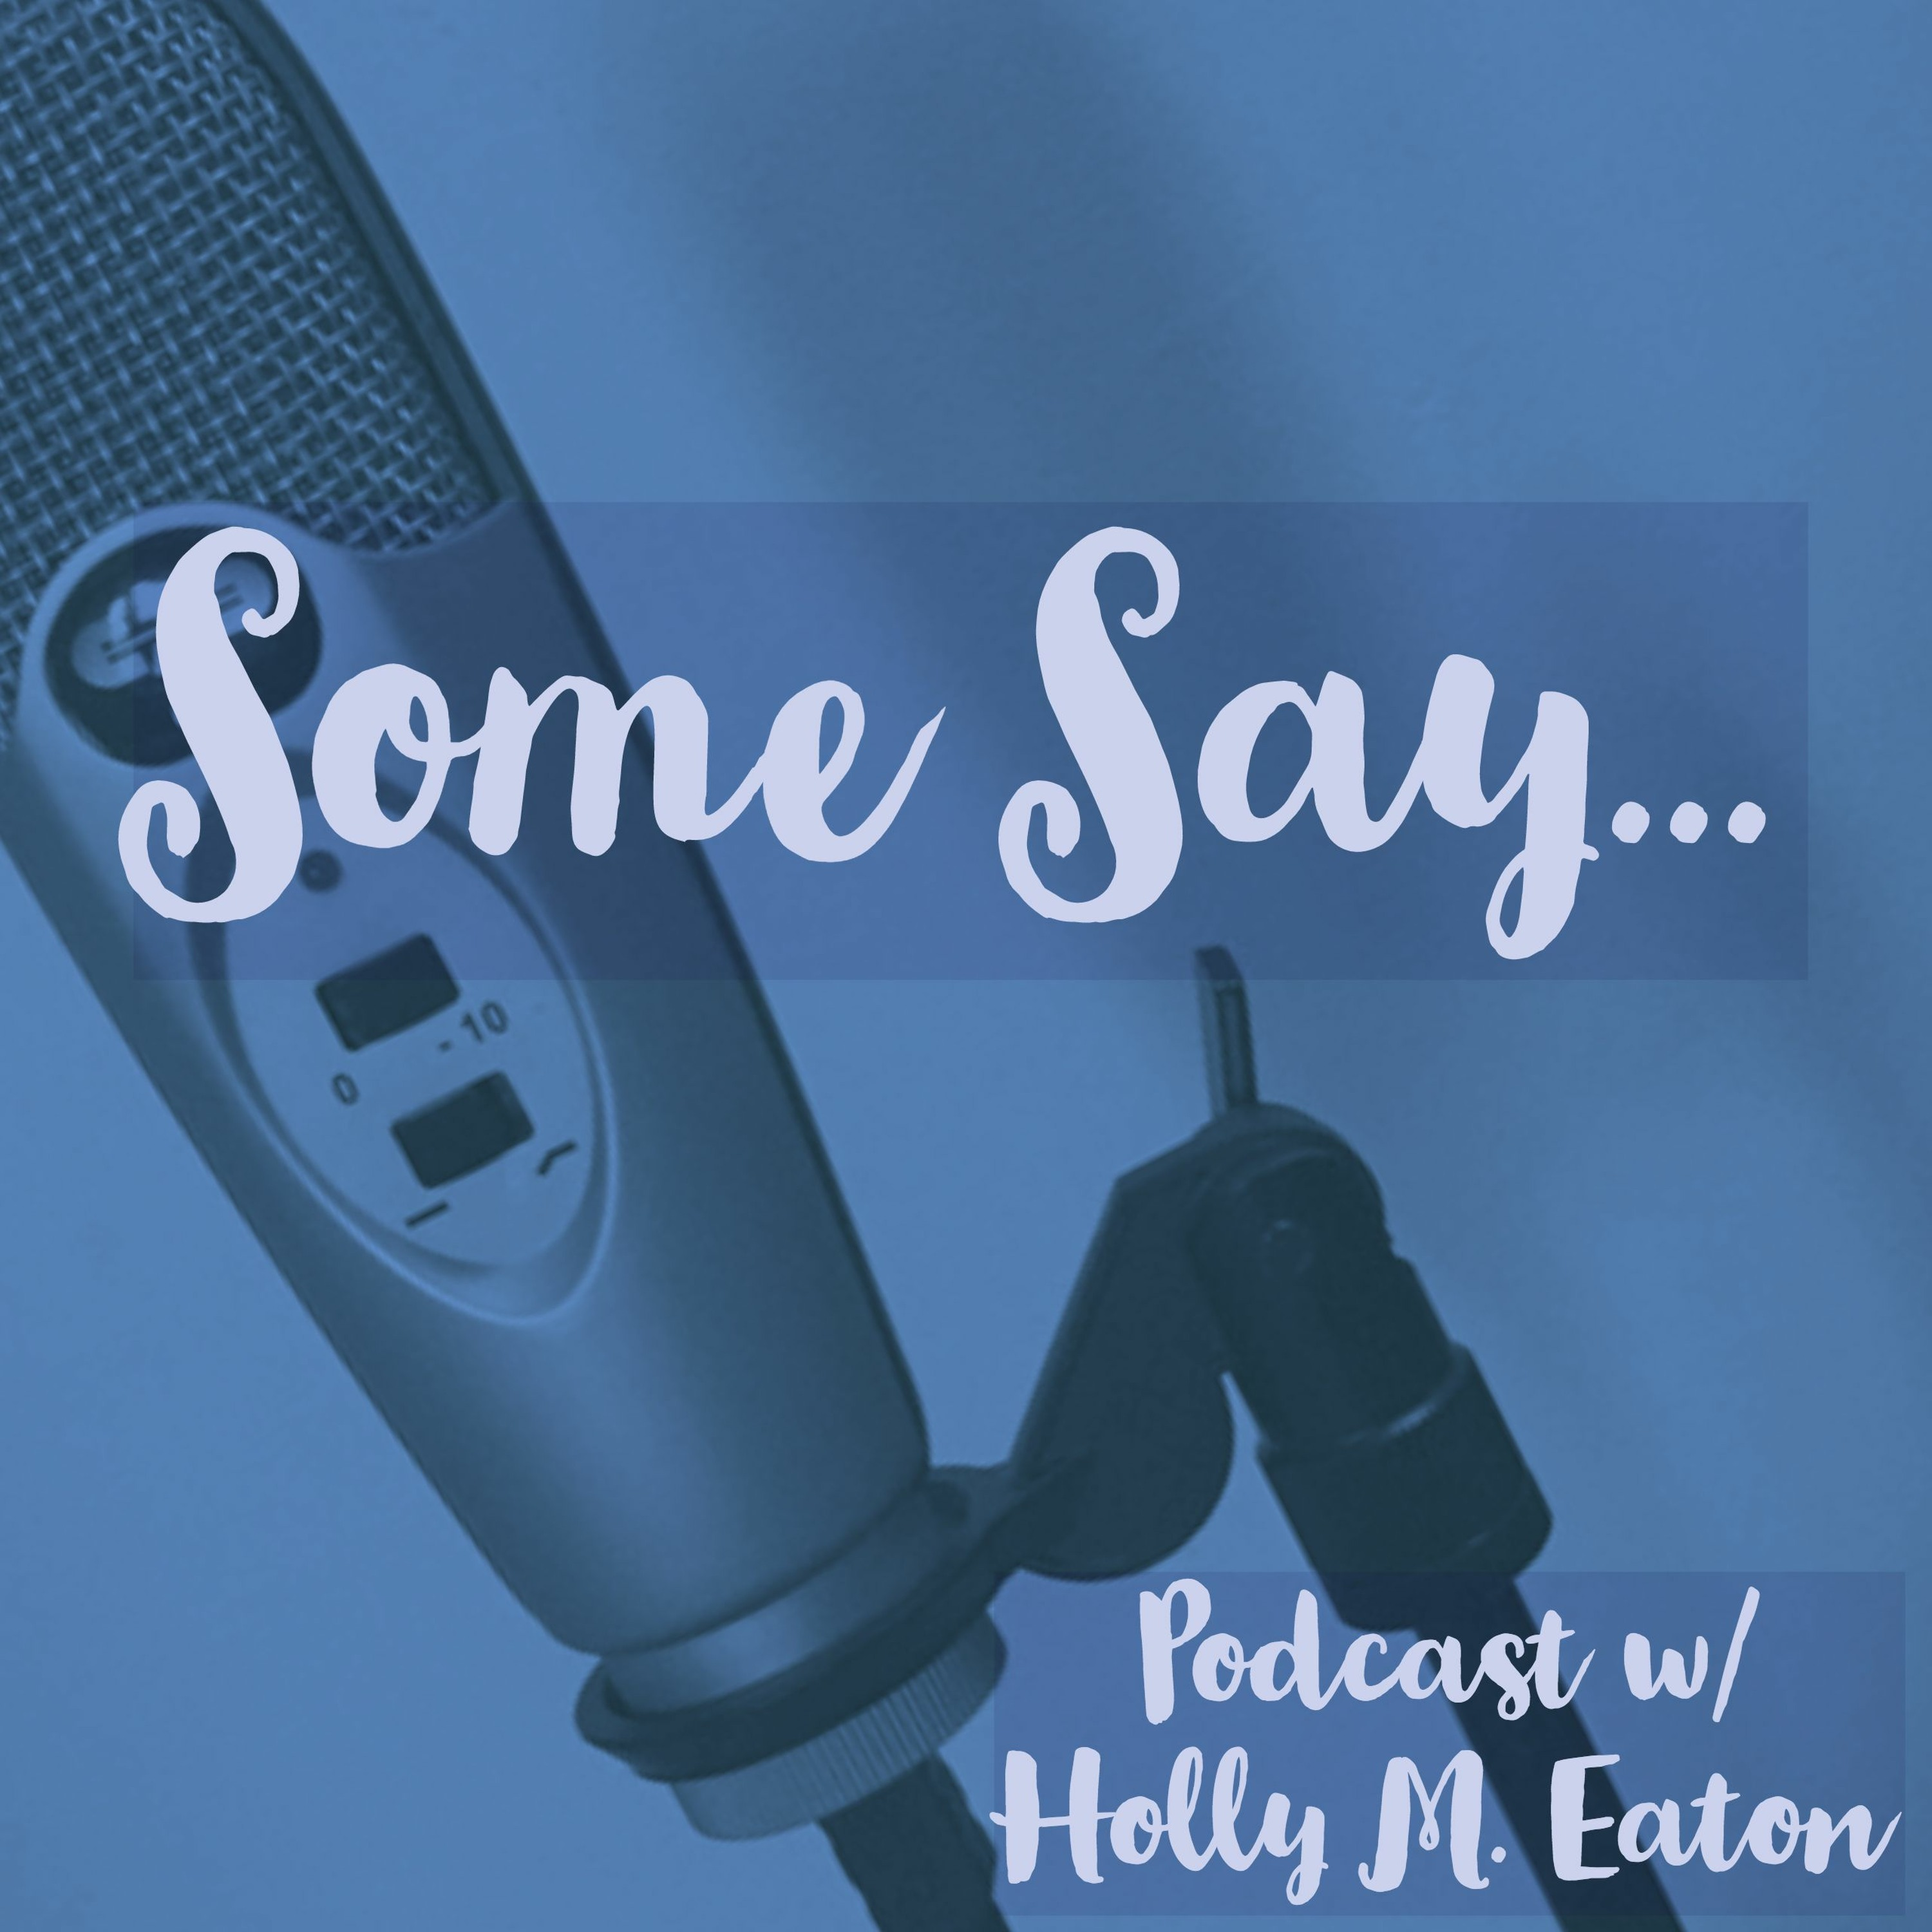 Some Say... Podcast! w/Holly, Ep. 4 Karen A. Brown